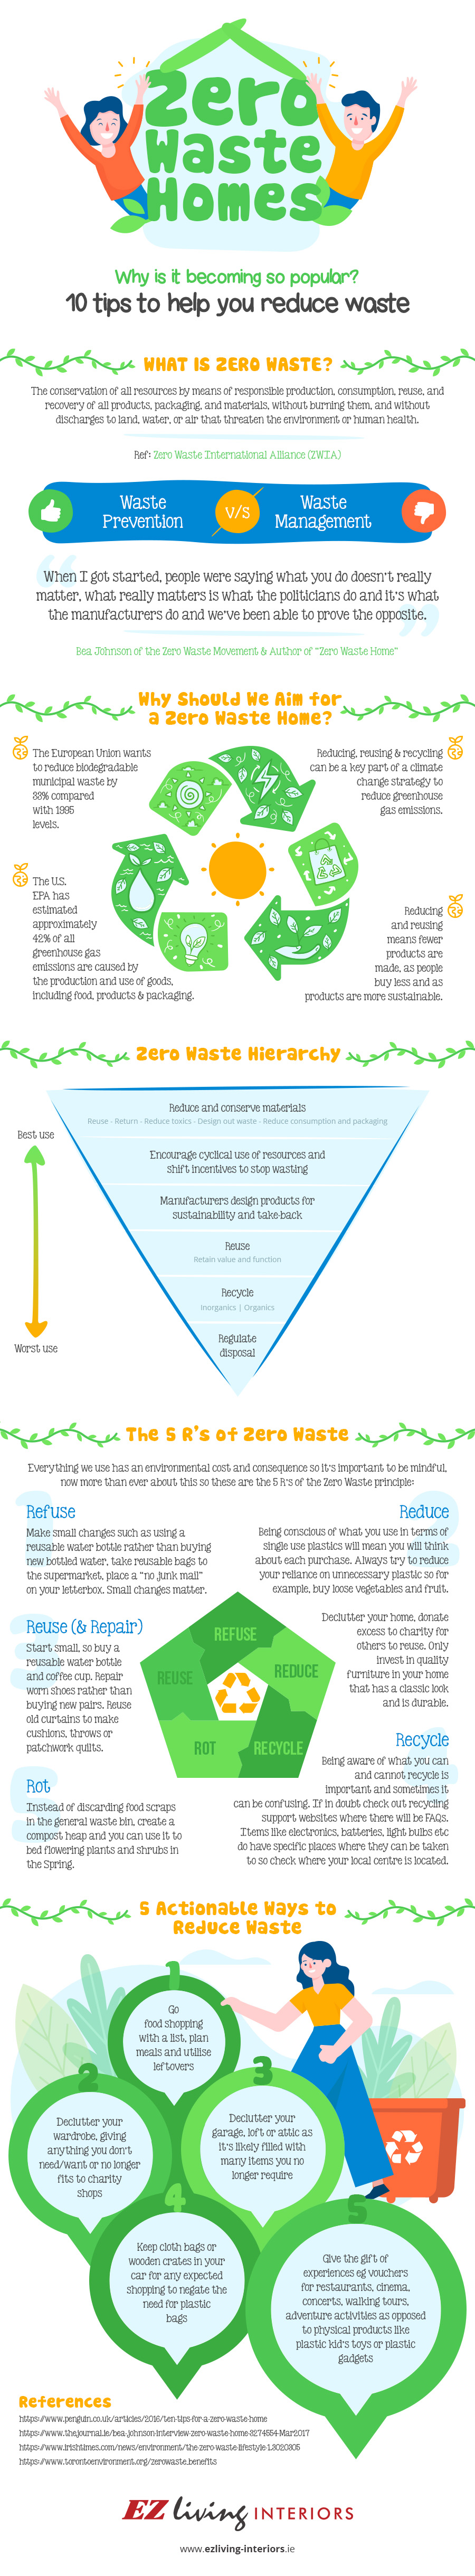 zero waste homes infographic waste prevention waste management reduce reuse recycle